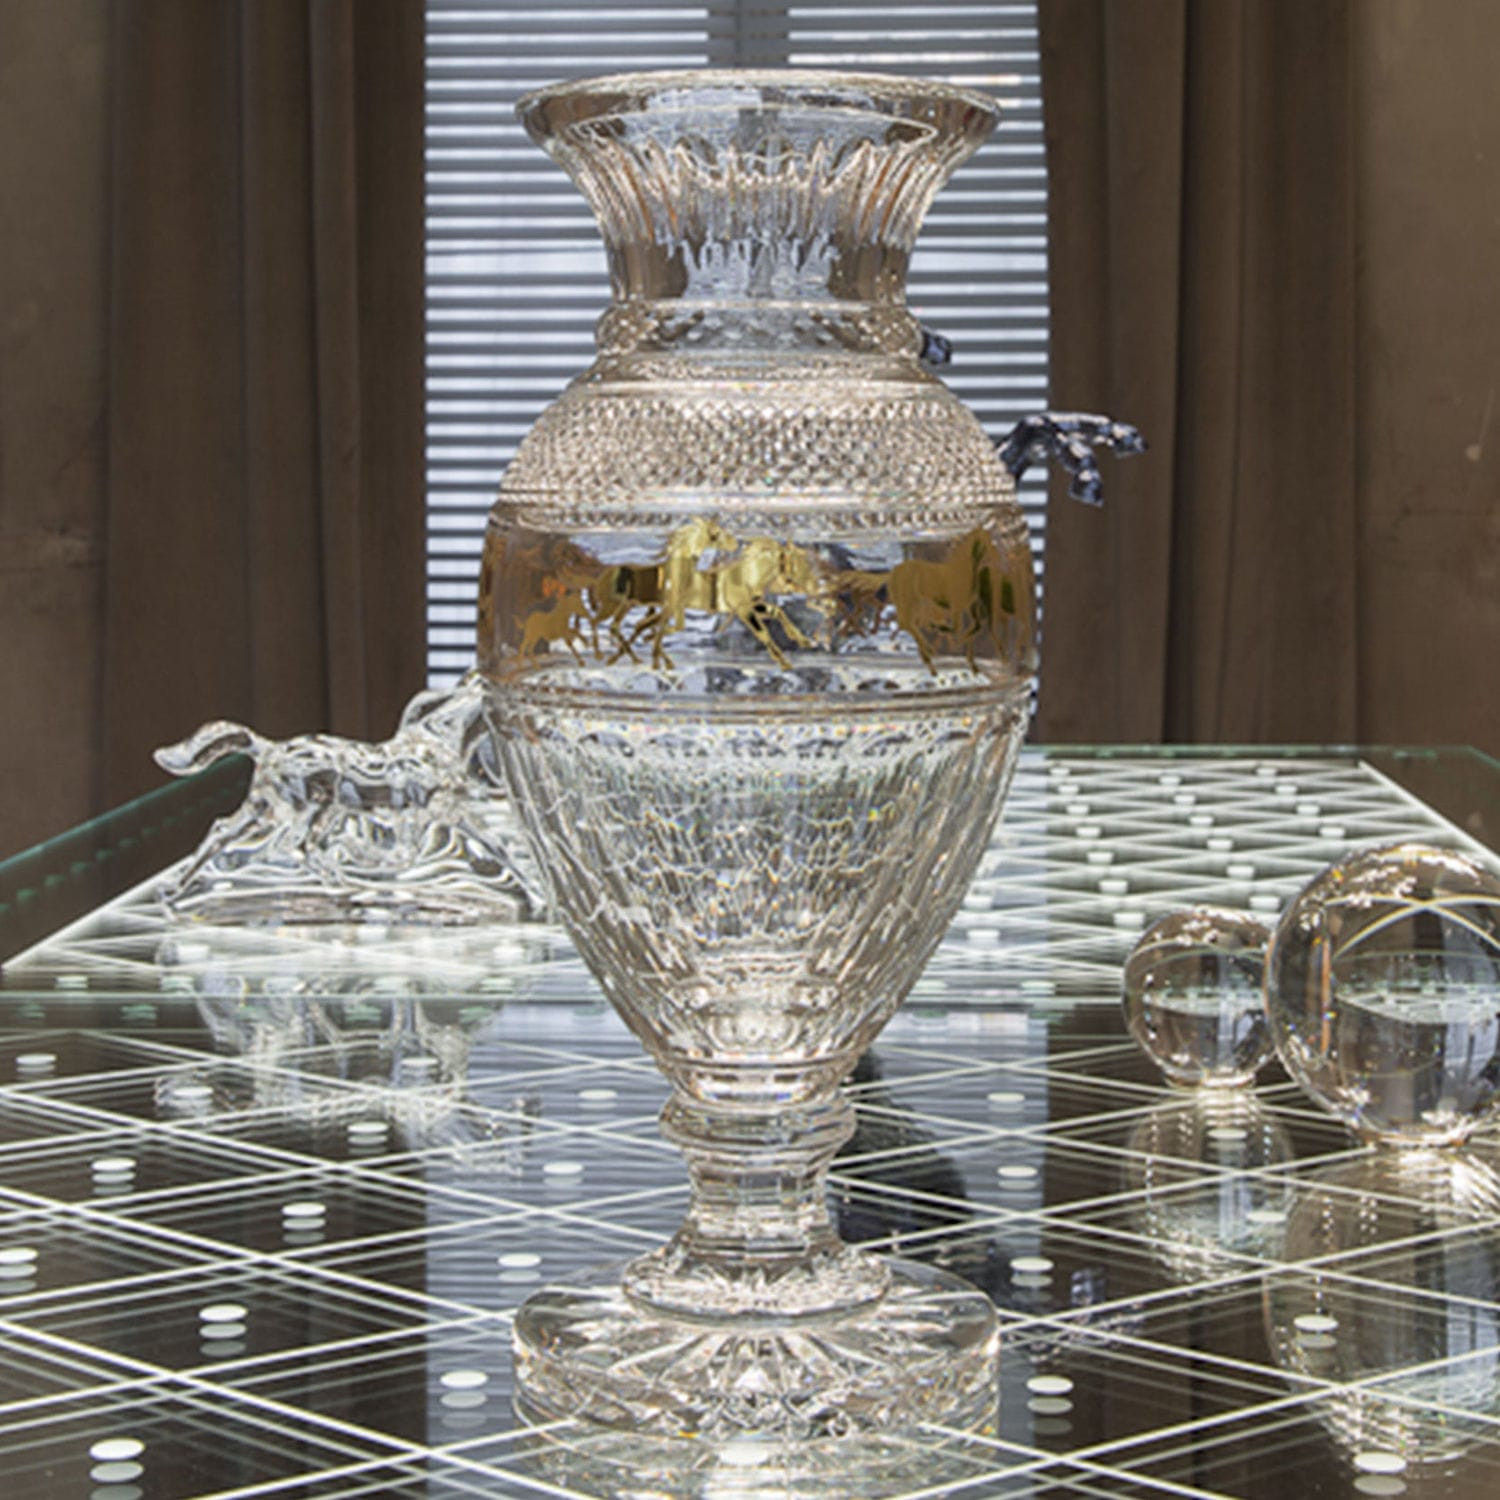 baccarat gingko crystal vase of traditional vase crystal cheval rally by allison hawkes baccarat intended for traditional vase crystal cheval rally by allison hawkes